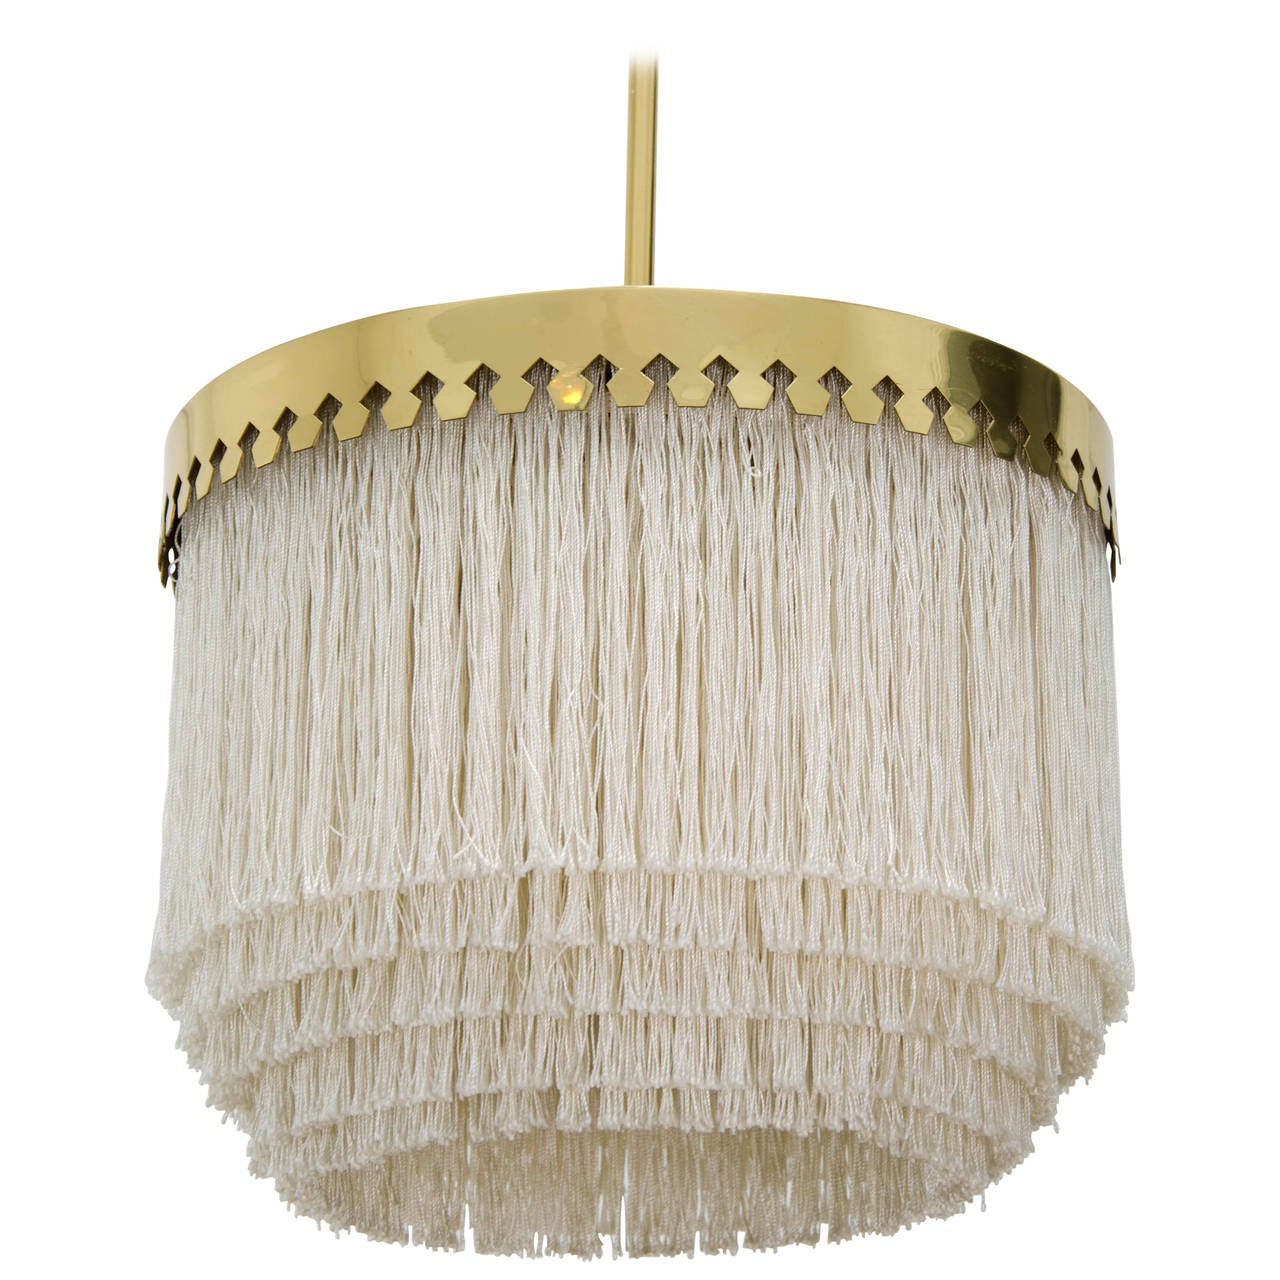 Pendant light by Hans-Agne Jakobsson, Sweden, 1960s.  Unusual and delicate pendant light with cut brass canopy and ivory-colored silk fringes. Good condition with signs of wear in line with age to both the brass and the silk; new wiring and